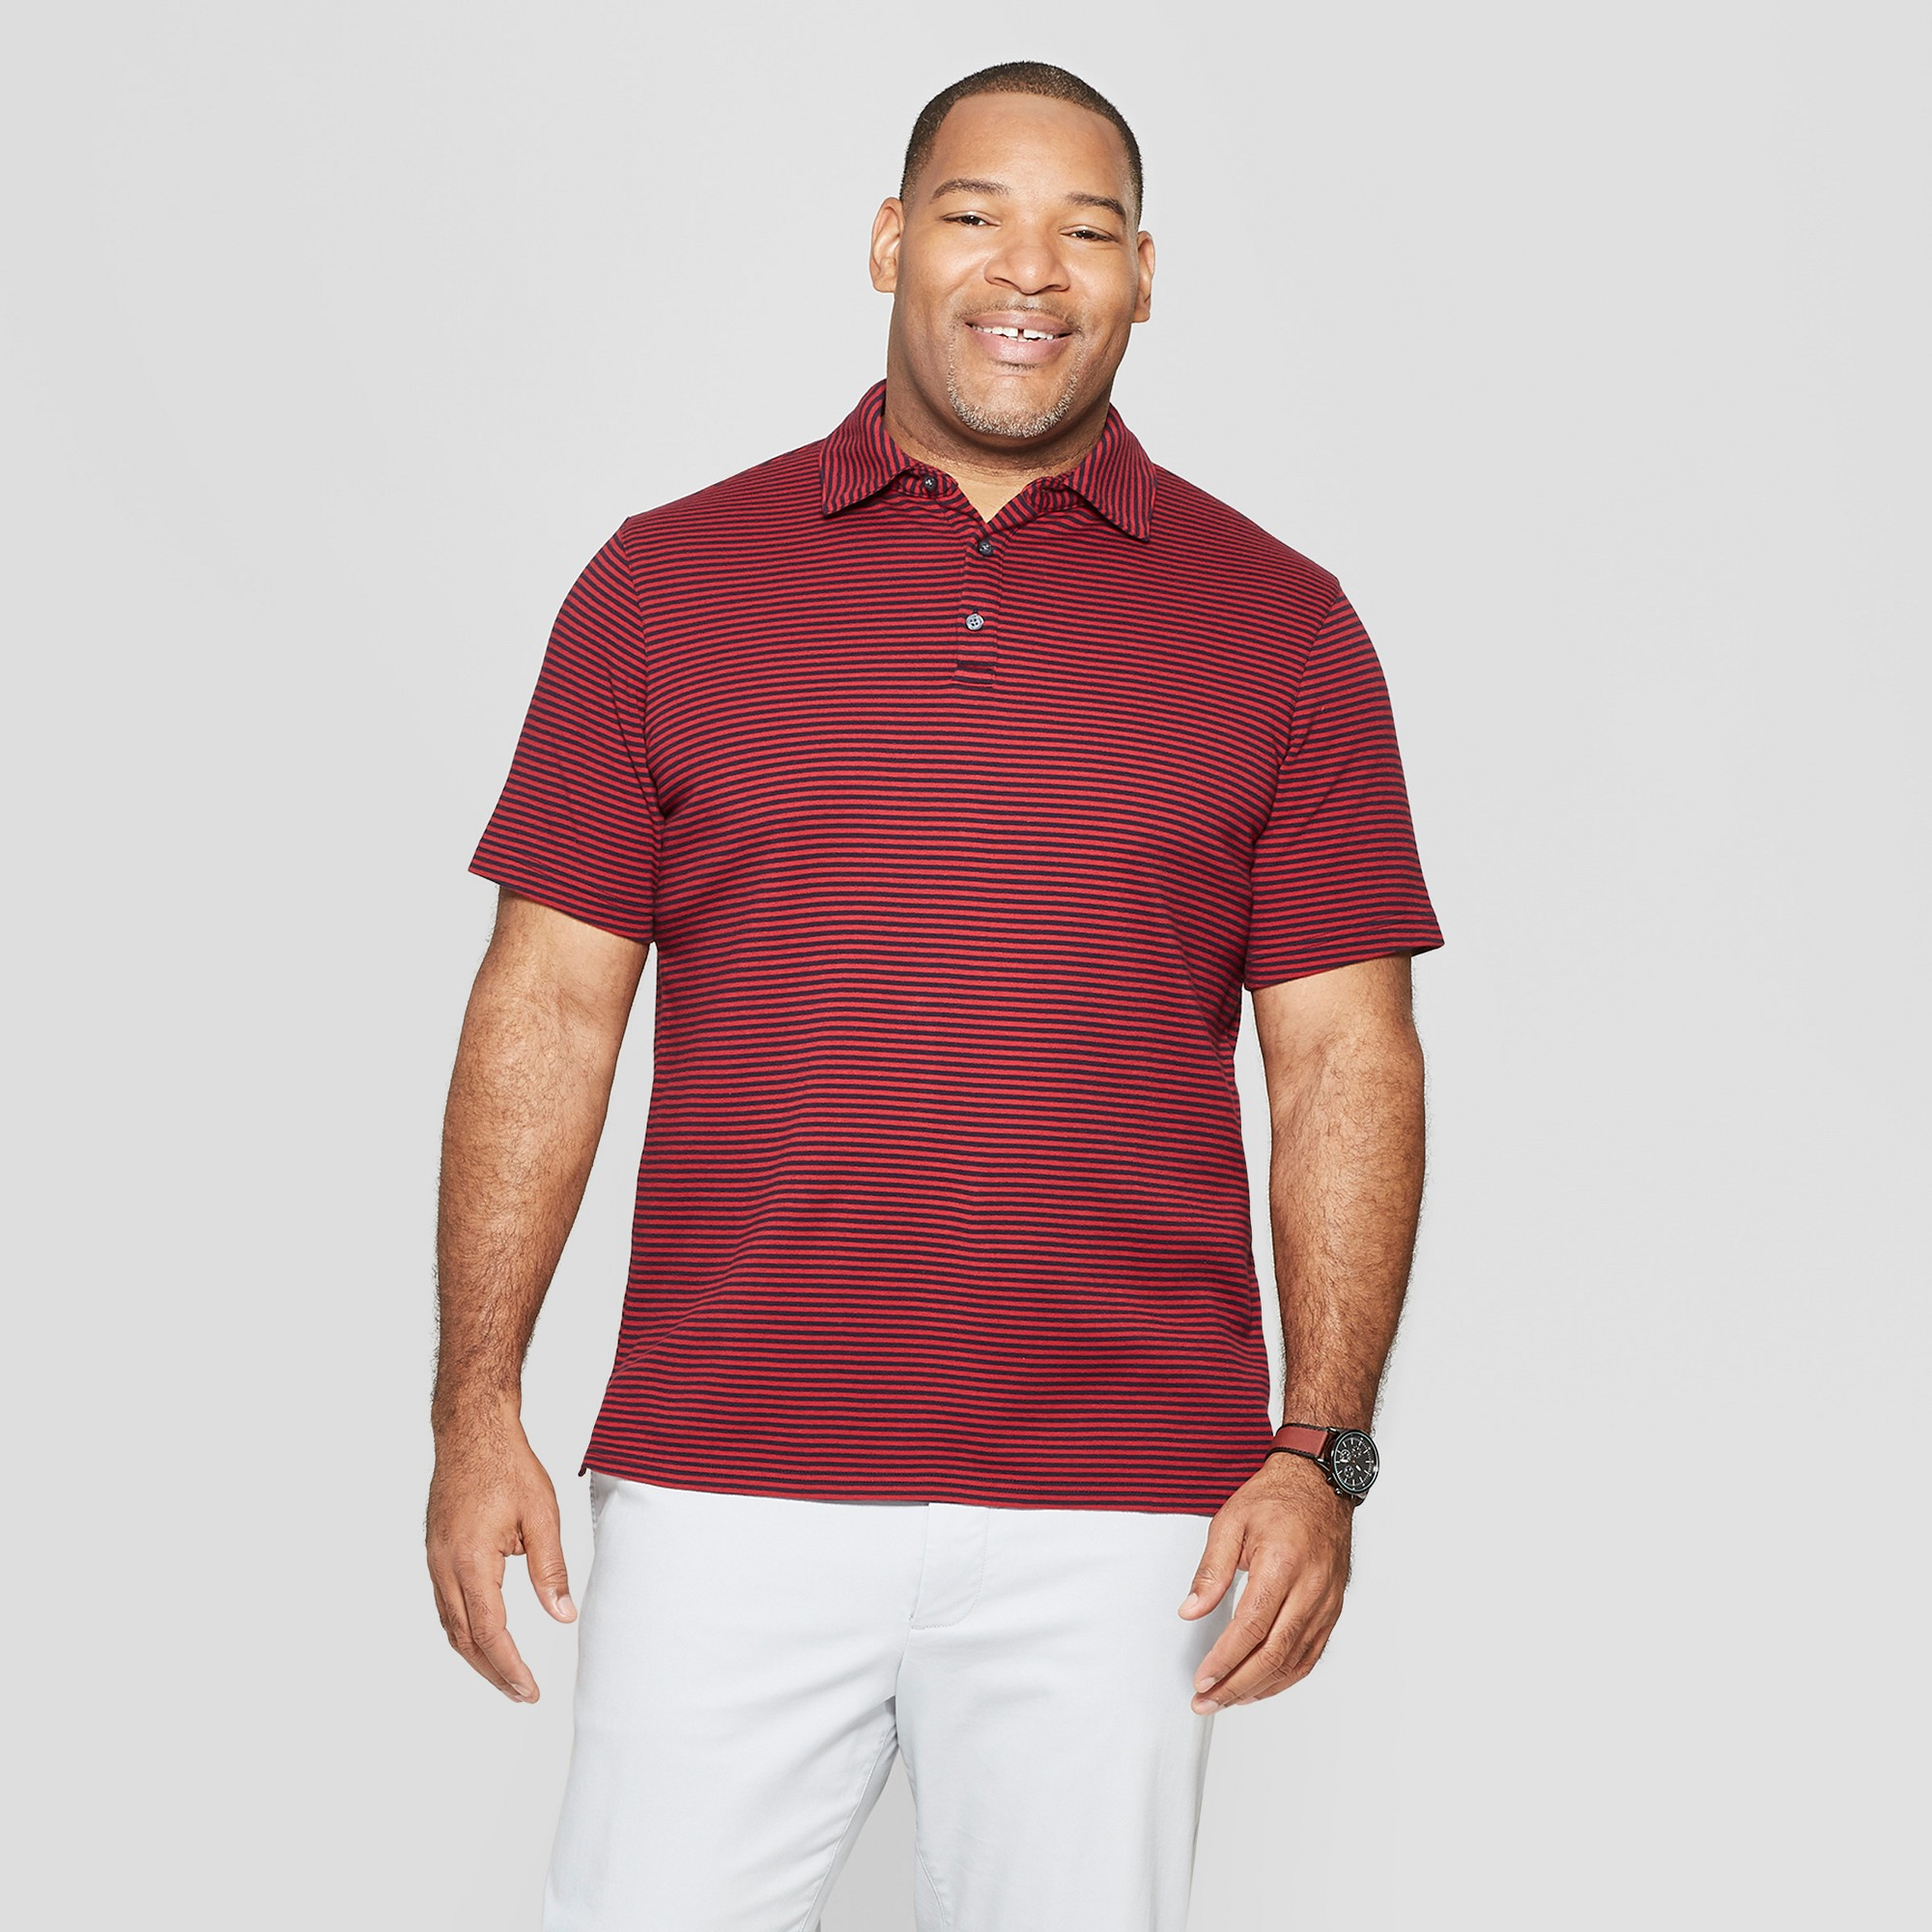 Men's Big & Tall Striped Standard Fit Short Sleeve Elevated Ultra-Soft Polo Shirt - Goodfellow & Co Majesty Red 5XBT